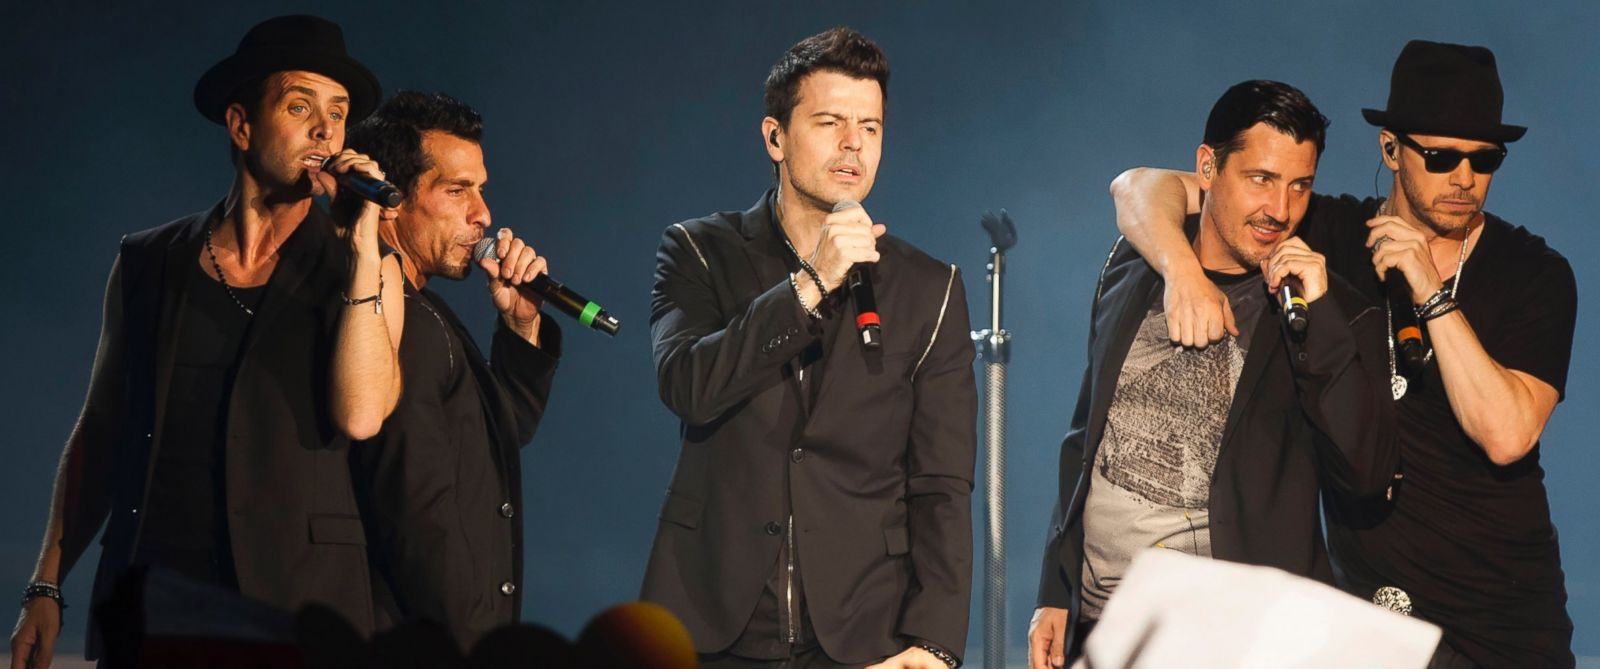 PHOTO: Joey McIntyre, Danny Wood, Donnie Wahlberg, Jonathan Knight and Jordan Knight of the New Kids On The Block perform in Berlin, Germany on May 21, 2014.